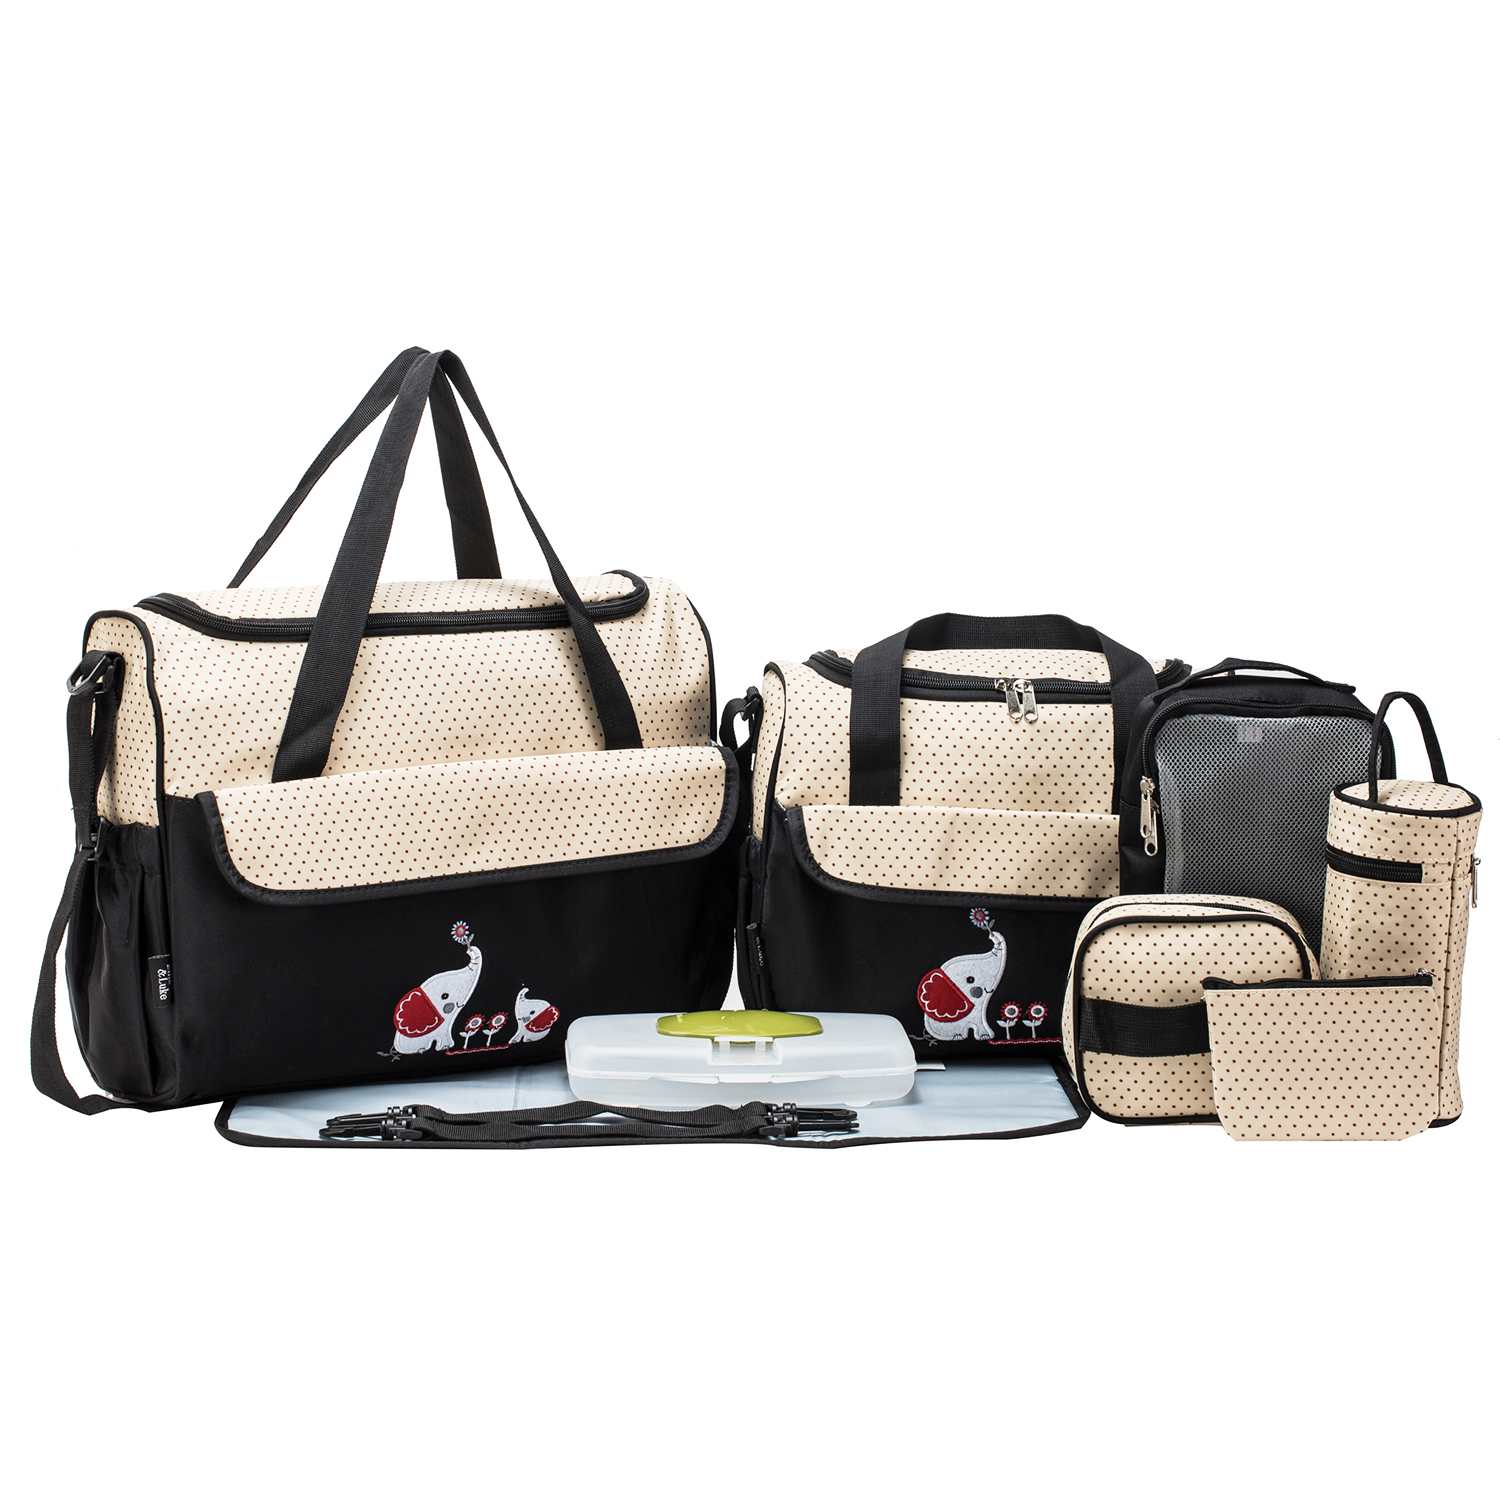 SoHo Collections, Large Capacity Tote Diaper Bag, 10 Piece Complete Set with Stroller Straps (Black with Elephant)